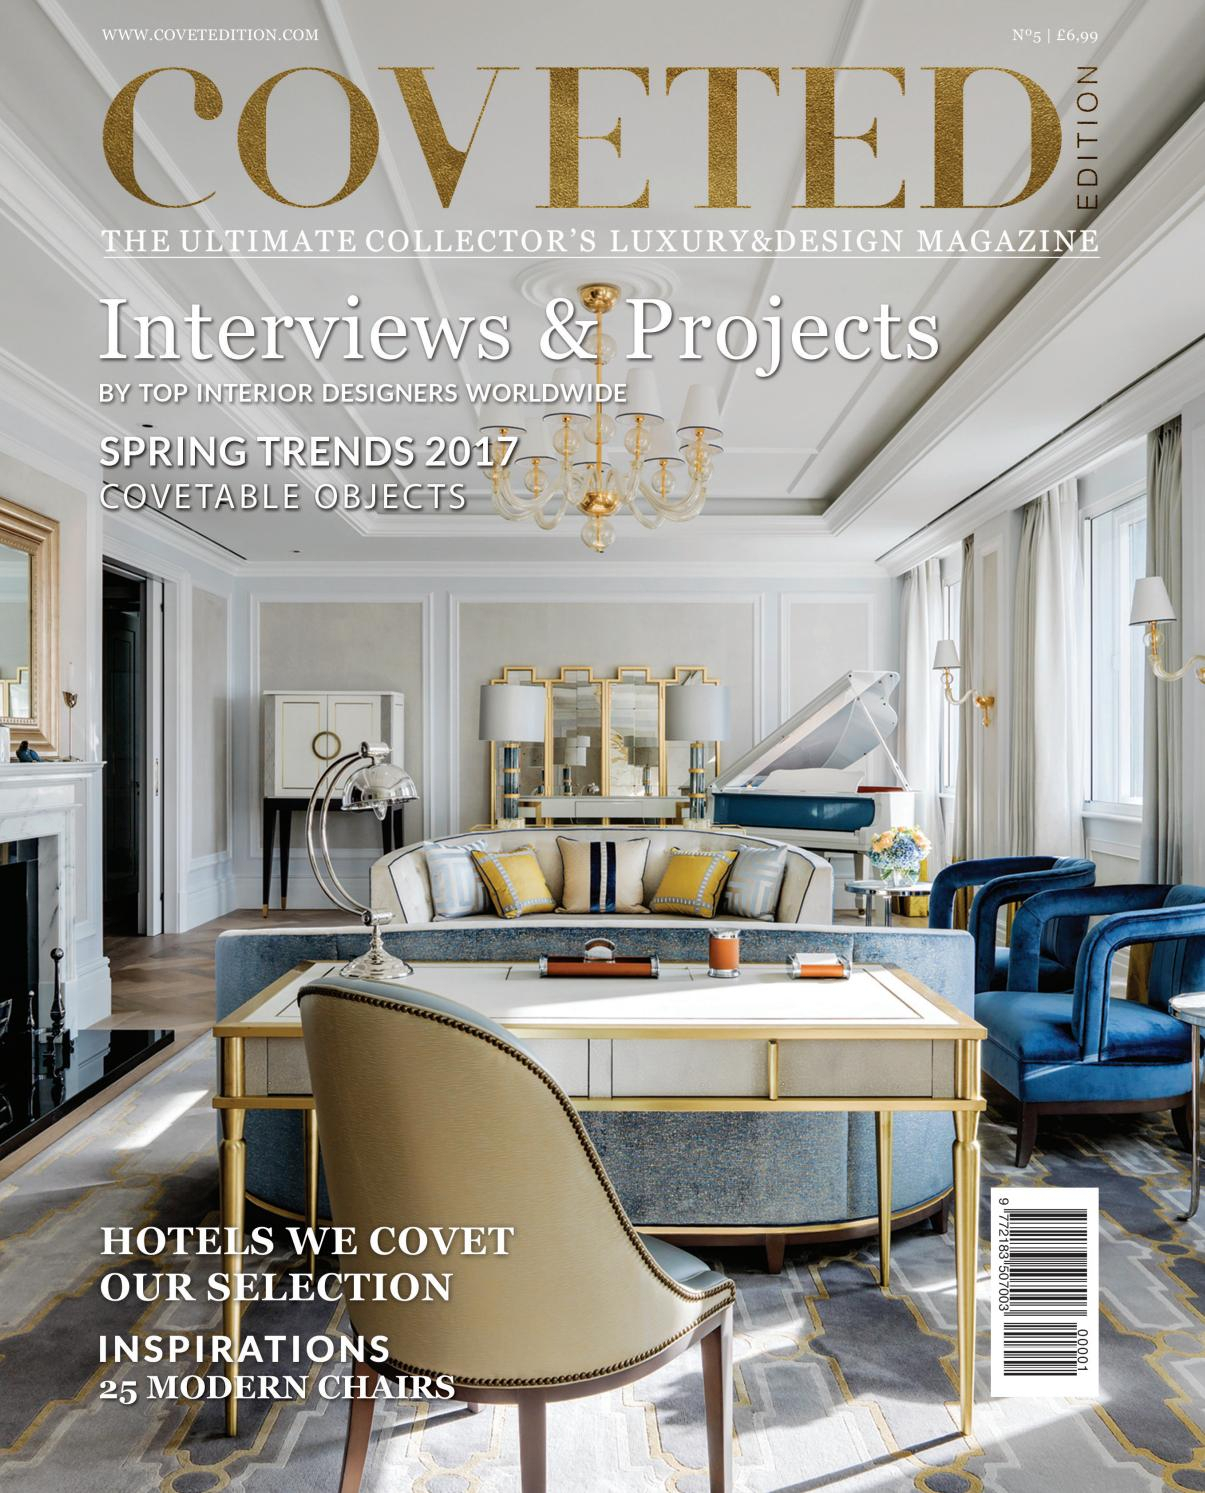 Coveted Magazine 05Covet Edition - Issuu within Juicy Guava Credenzas (Image 10 of 30)